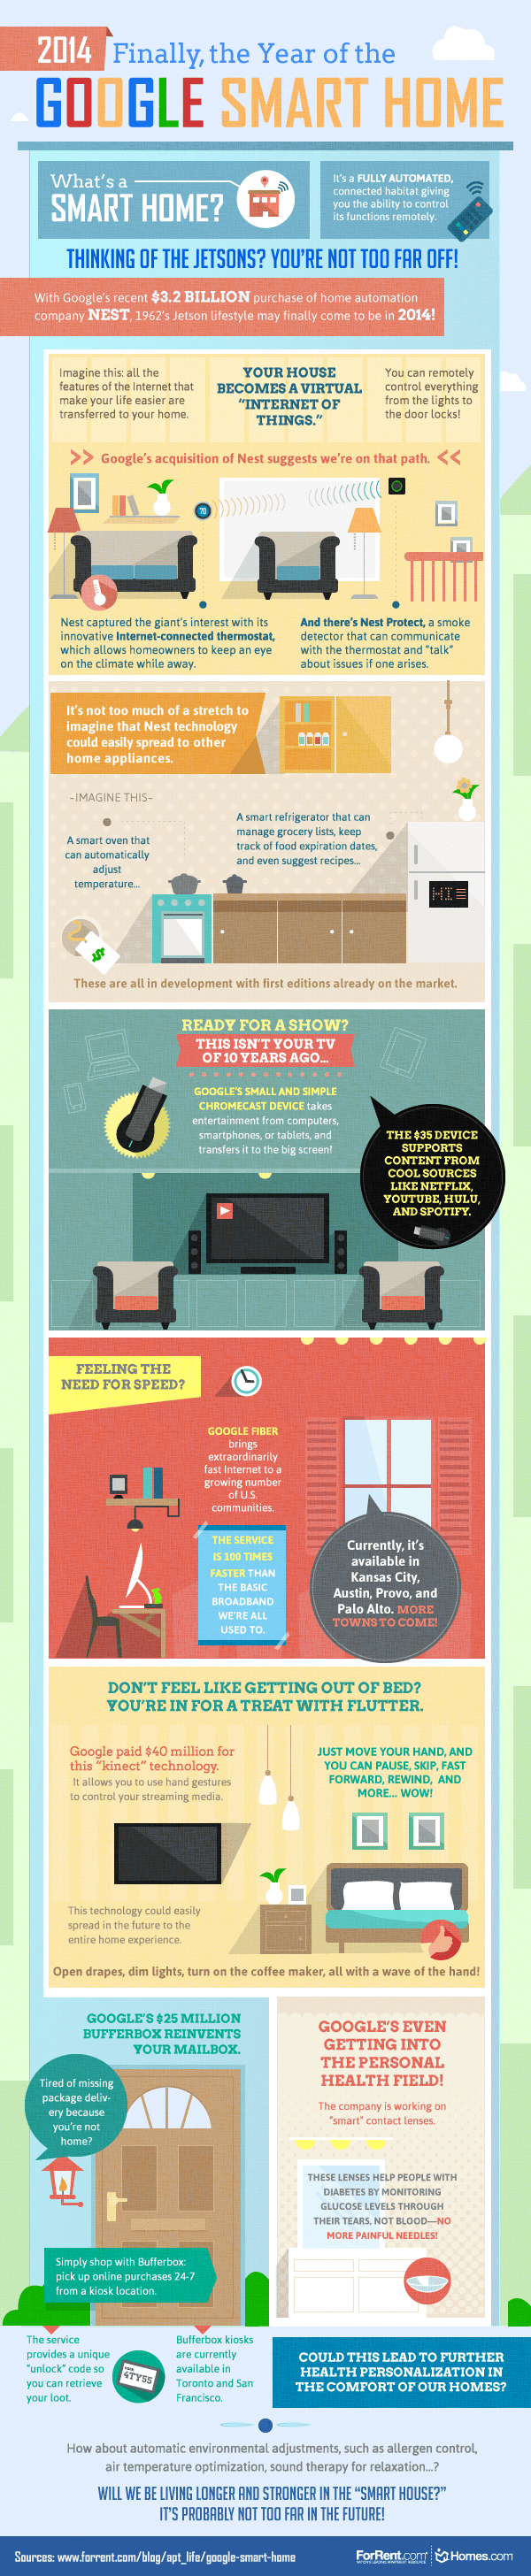 2014 the year of the google smart home infographic search engine journal. Black Bedroom Furniture Sets. Home Design Ideas